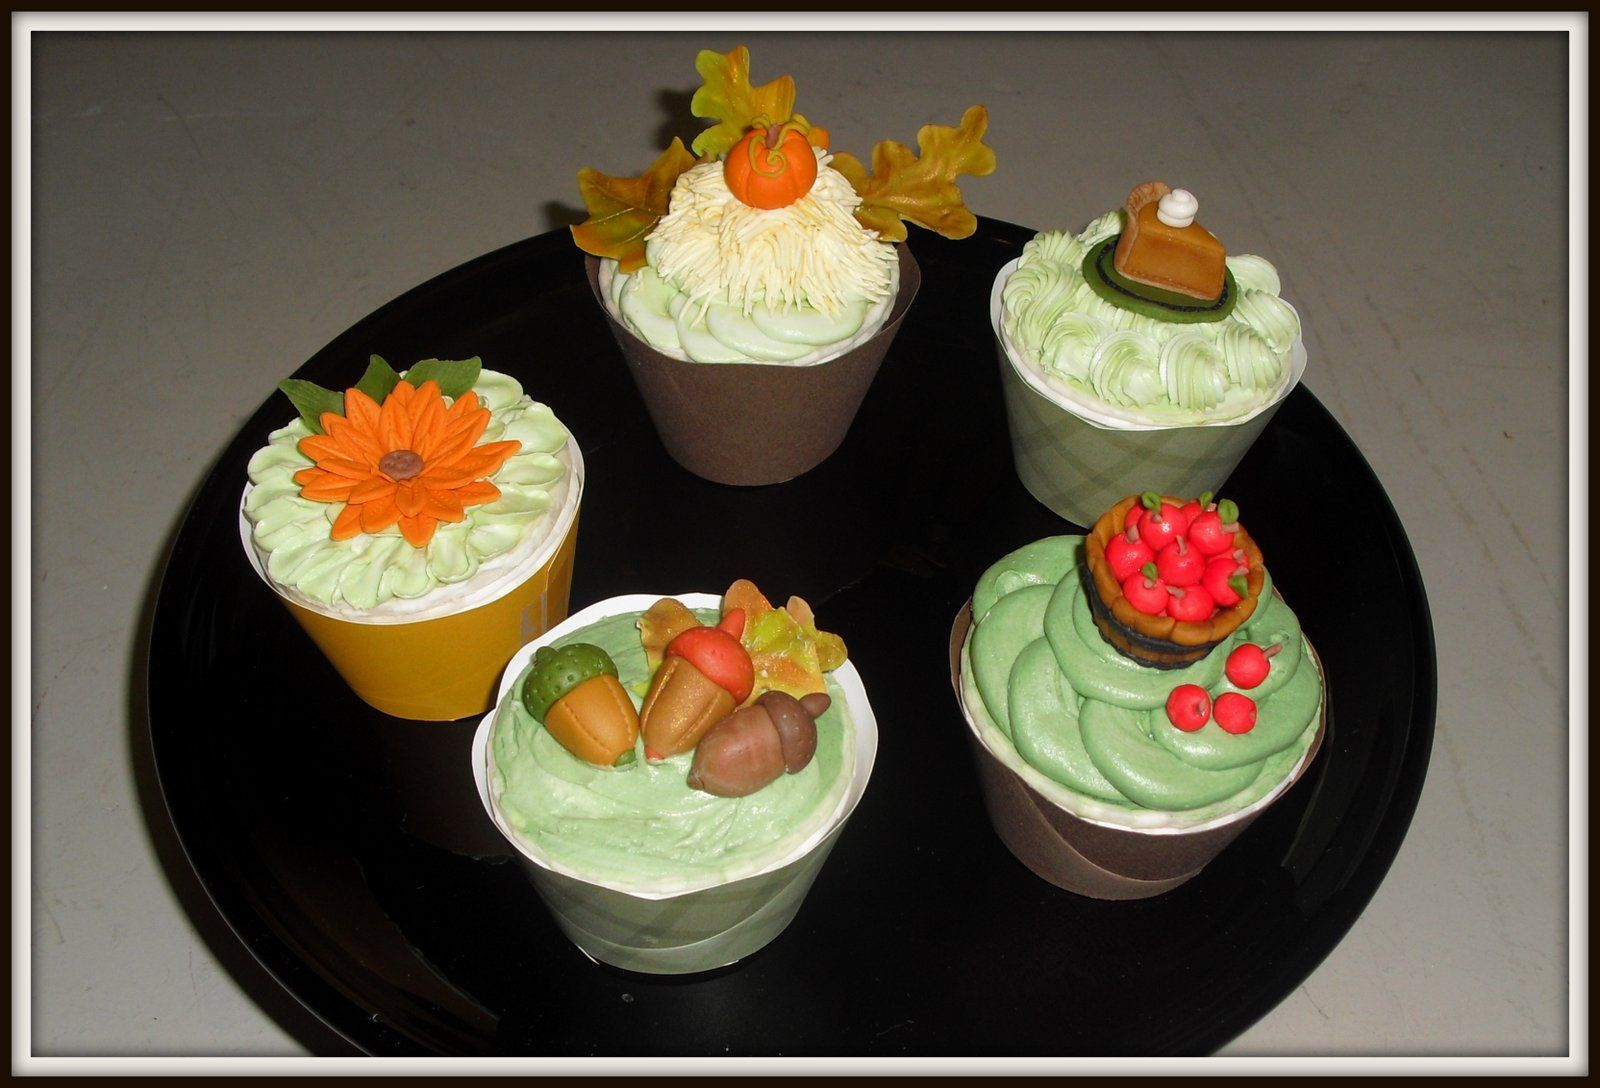 Mrs  Buttercream Cake Decorating : Fabulous Fall Cupcakes Mrs. Buttercream Cake Decorating Pinterest